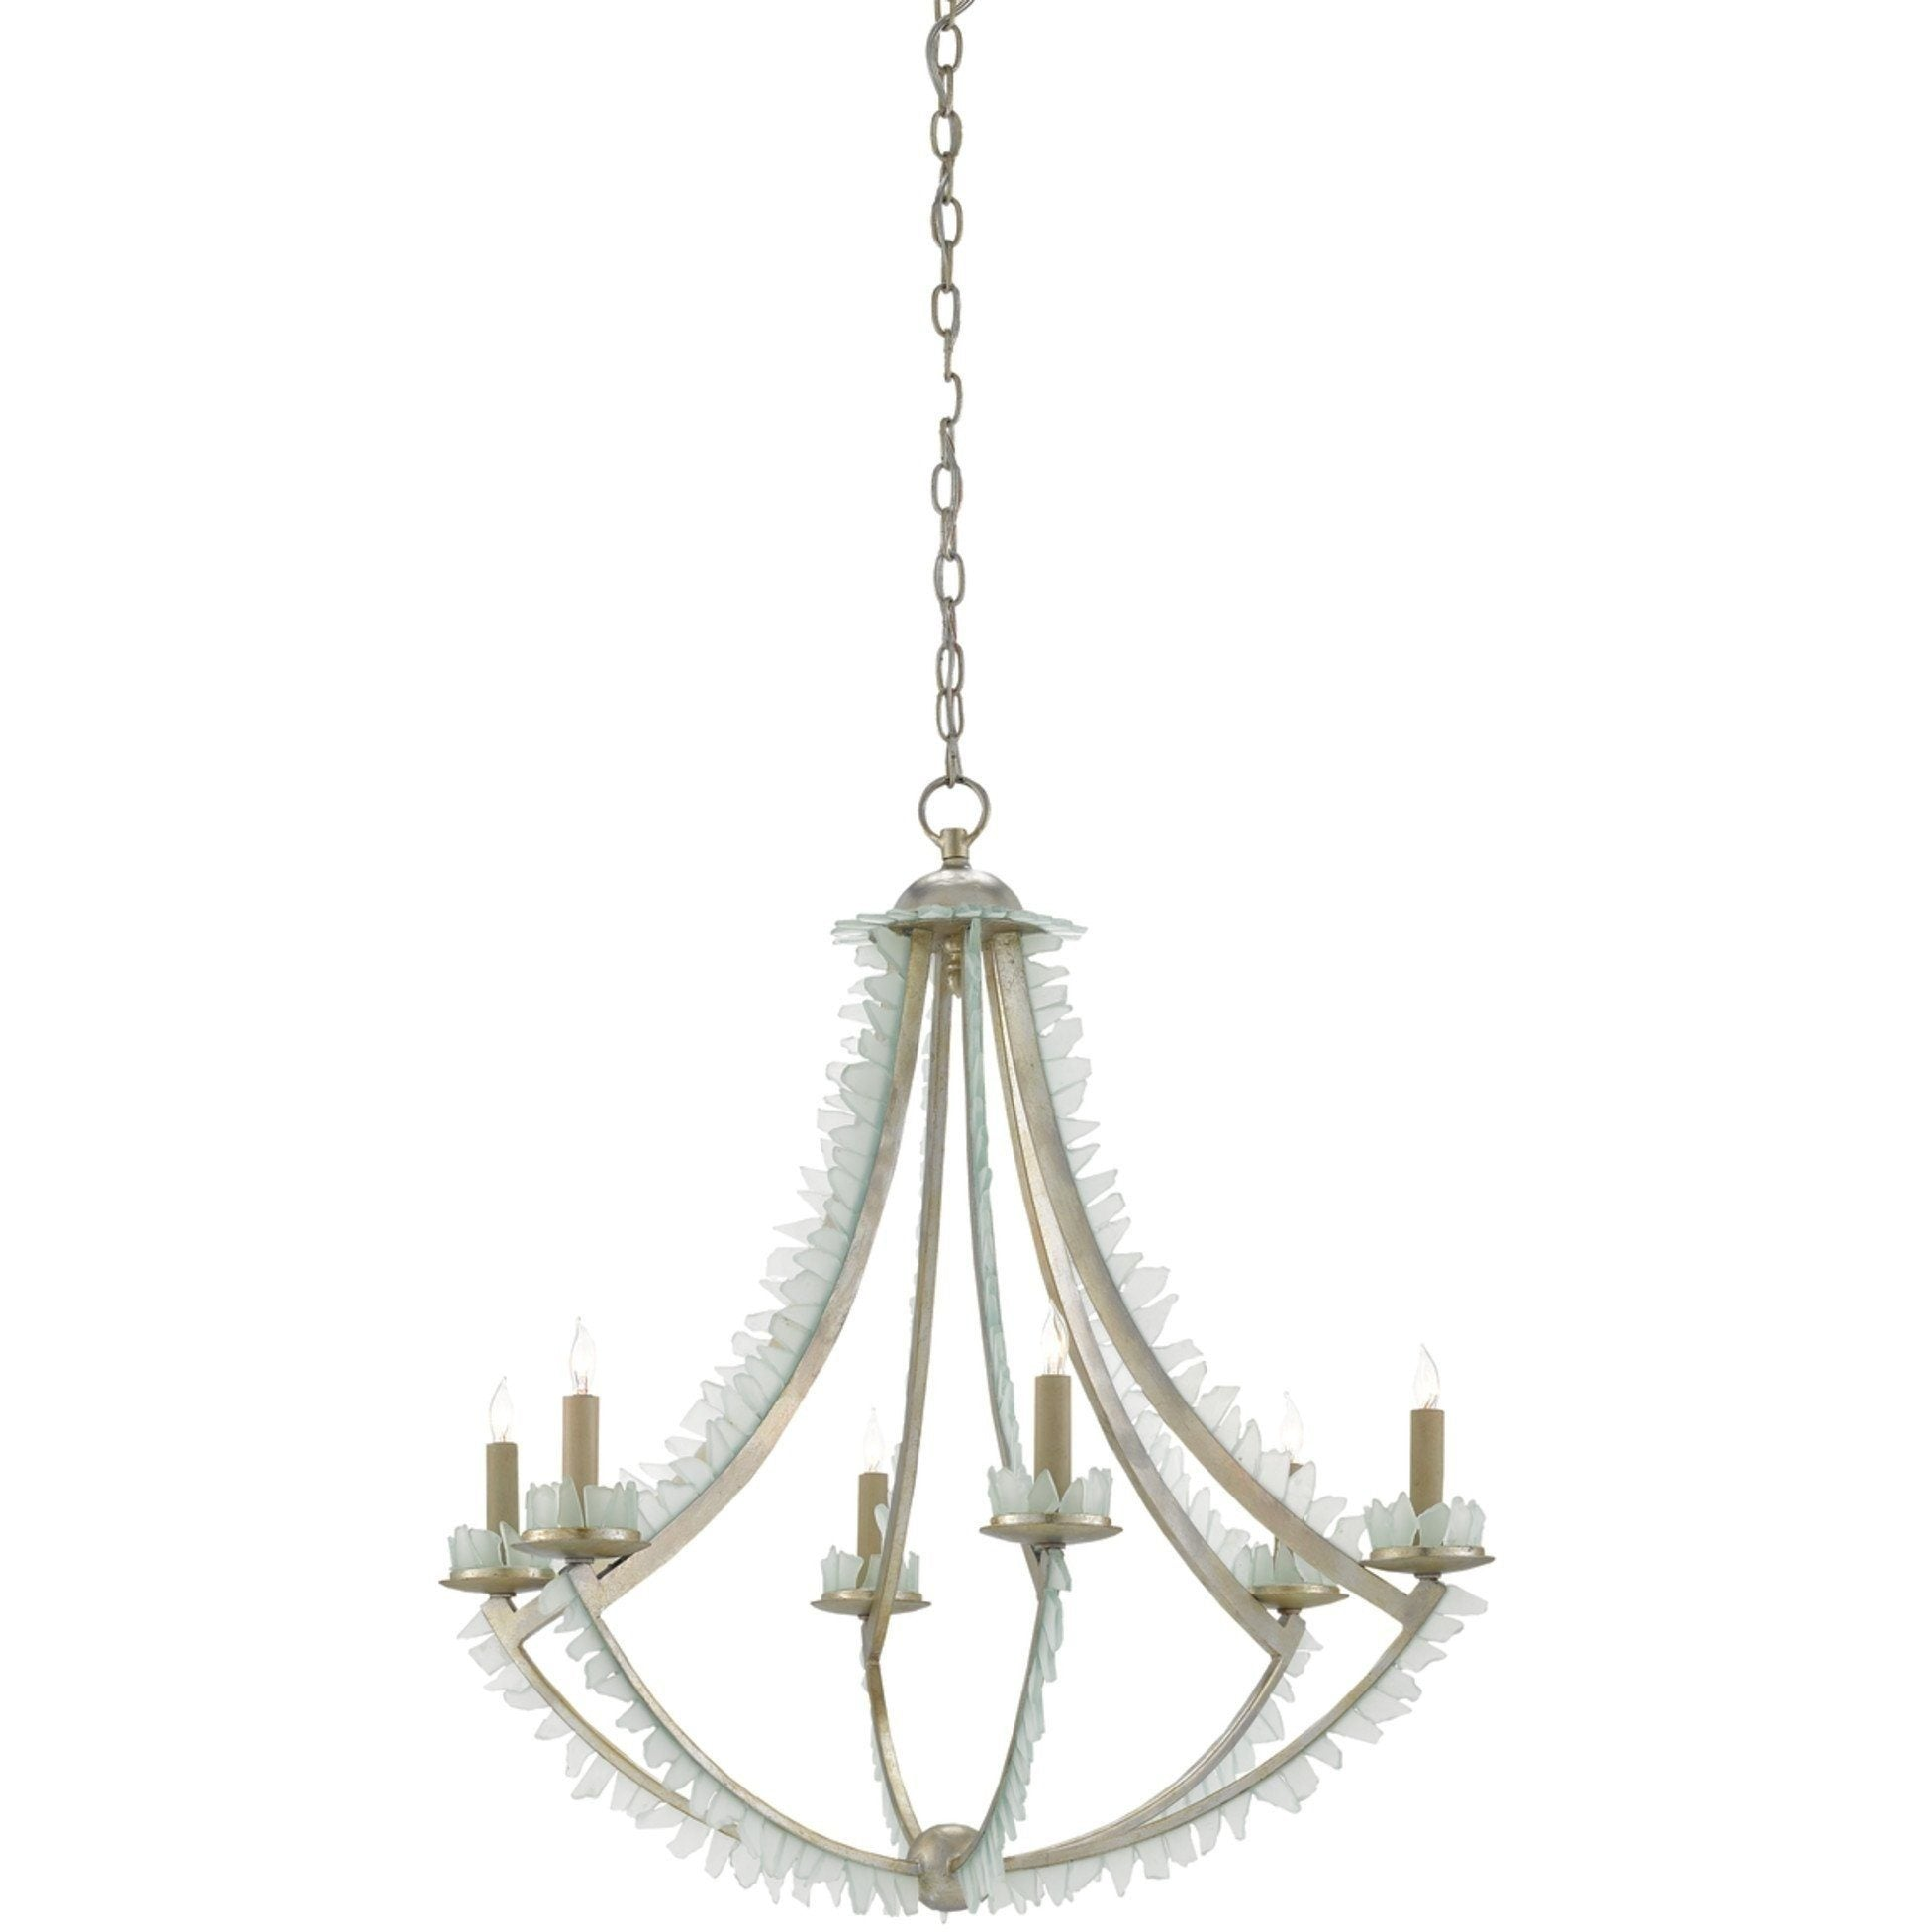 Currey and Company Saltwater Chandelier 9000-0209 - LOVECUP